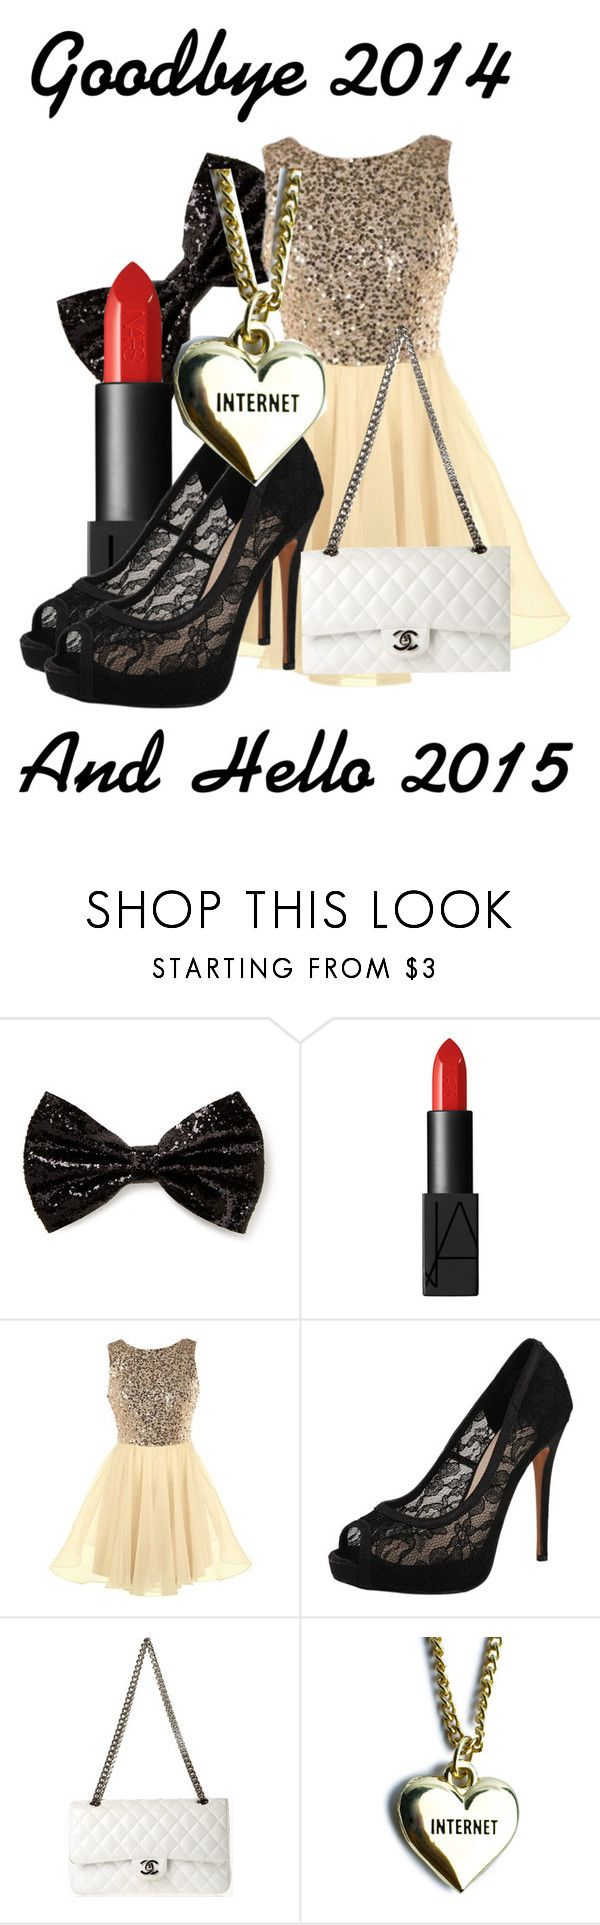 """""""Goodbye 2014"""" by princessmikyrah ❤ liked on Polyvore featuring Forever 21, NARS Cosmetics, Vince Camuto, Chanel and Lazy Oaf"""